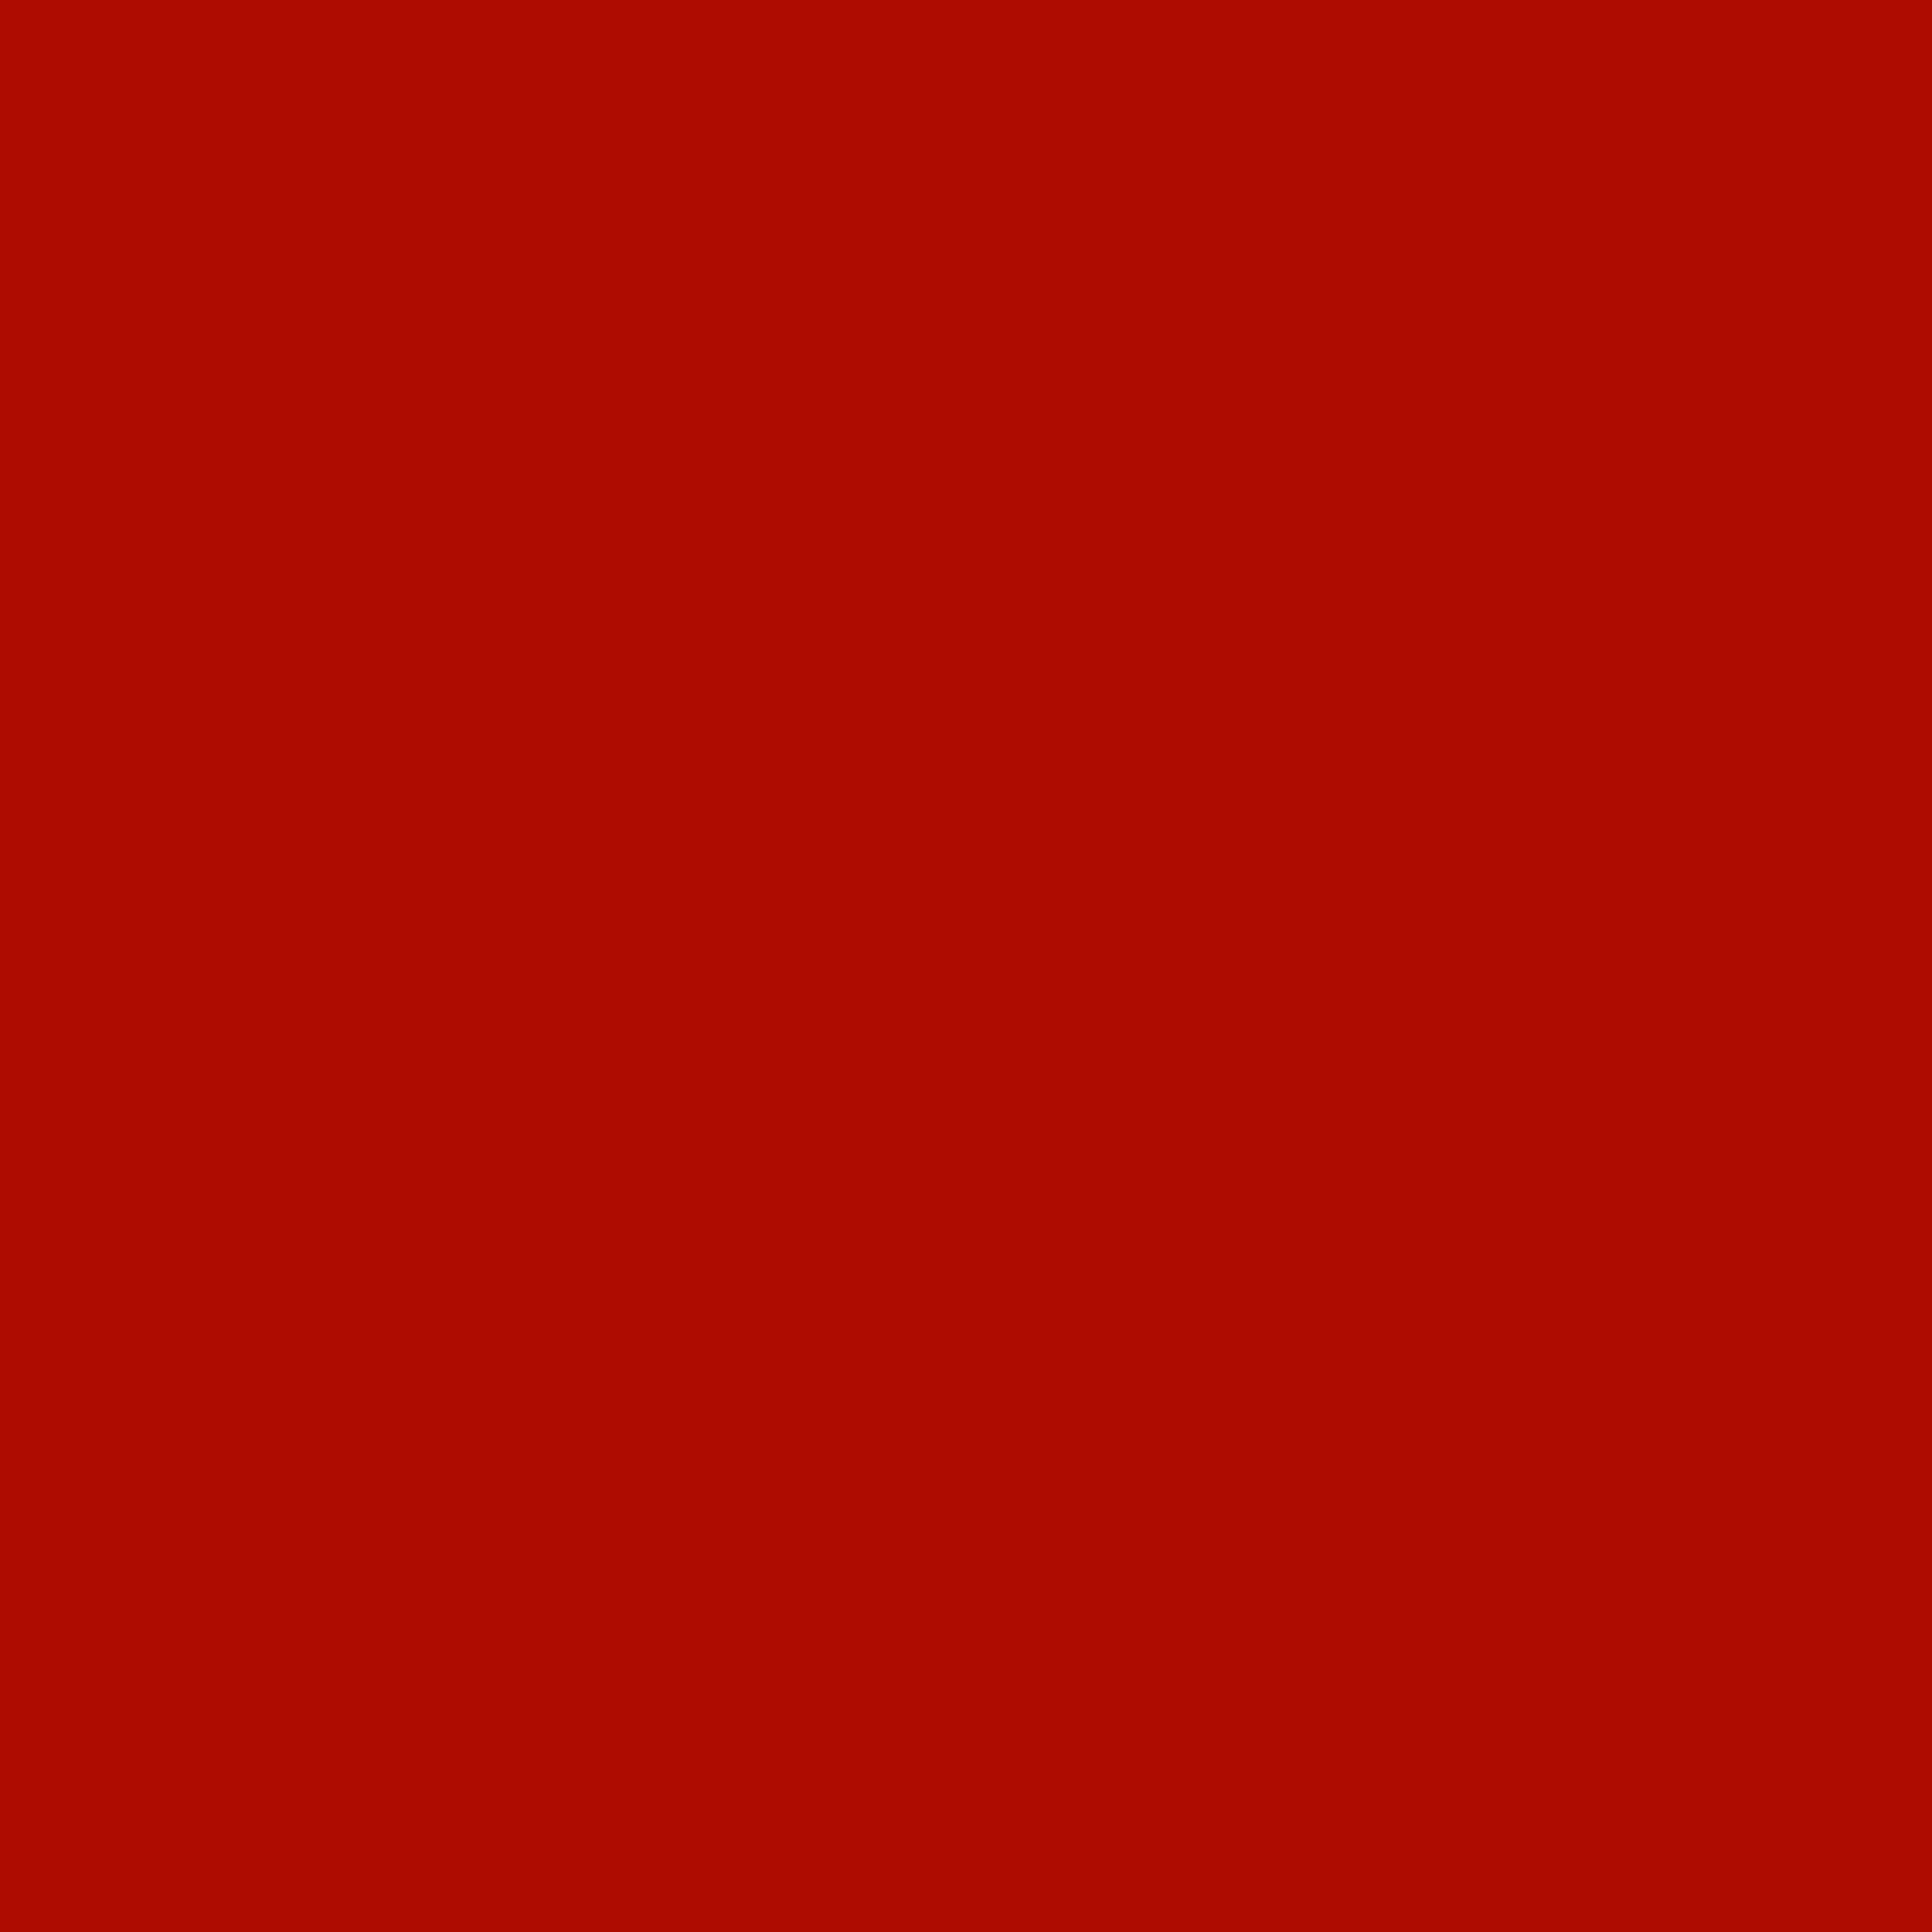 2048x2048 Mordant Red 19 Solid Color Background